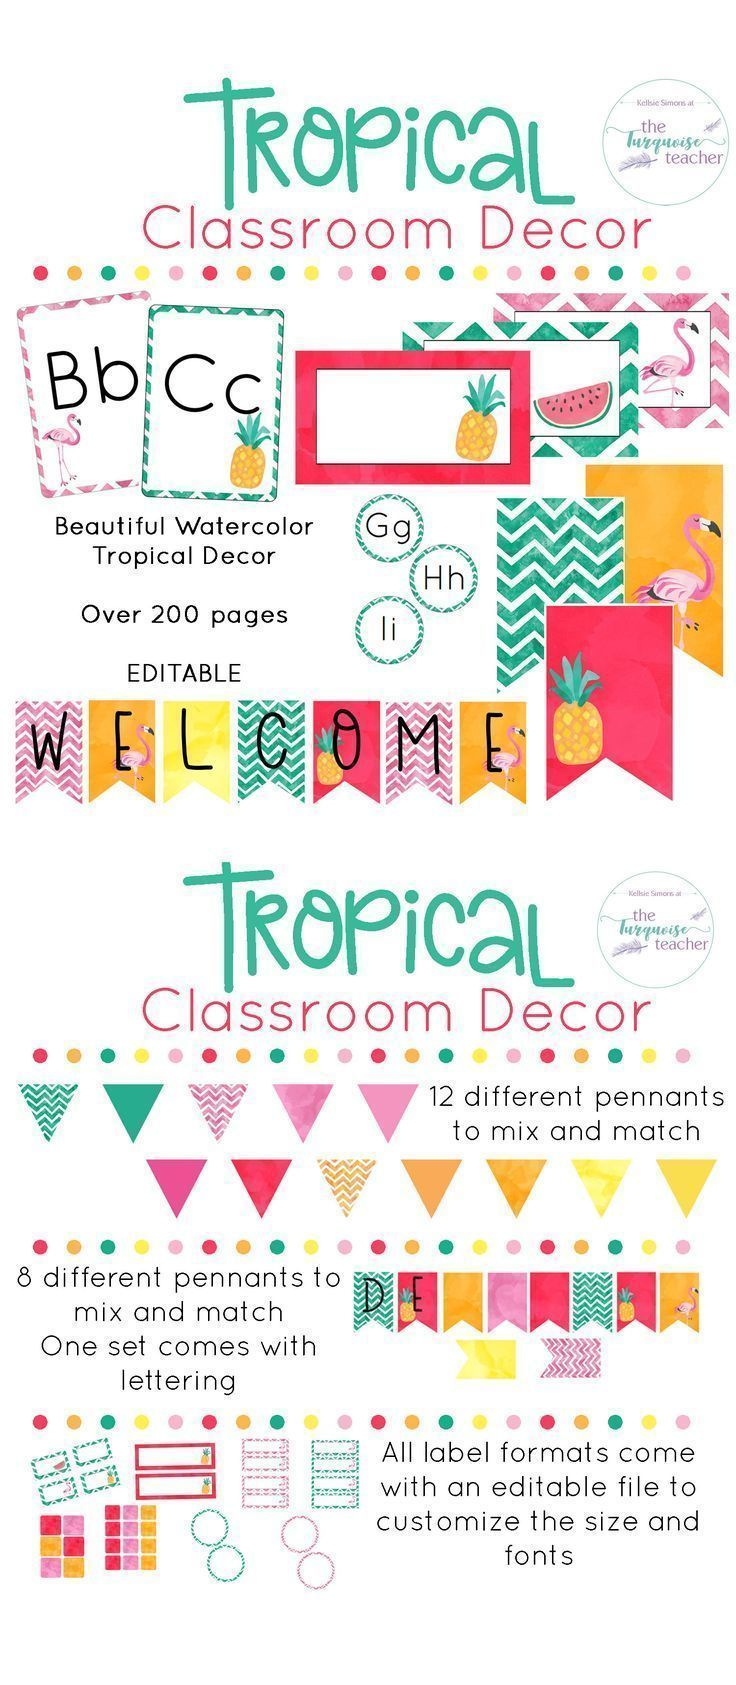 Tropical Classroom Decor | Fully Editable  Bring a little color and flair into your classroom! This set comes with so many different colors, styles, and clipart for you to customize your classroom ( over 200 pages! ). Created to allow you to mix and match your favorite colors to bring a little island breeze into your room. All templates come in an editable format to make your own names tags, locker tags, labels, signs, class posters, banners and more!